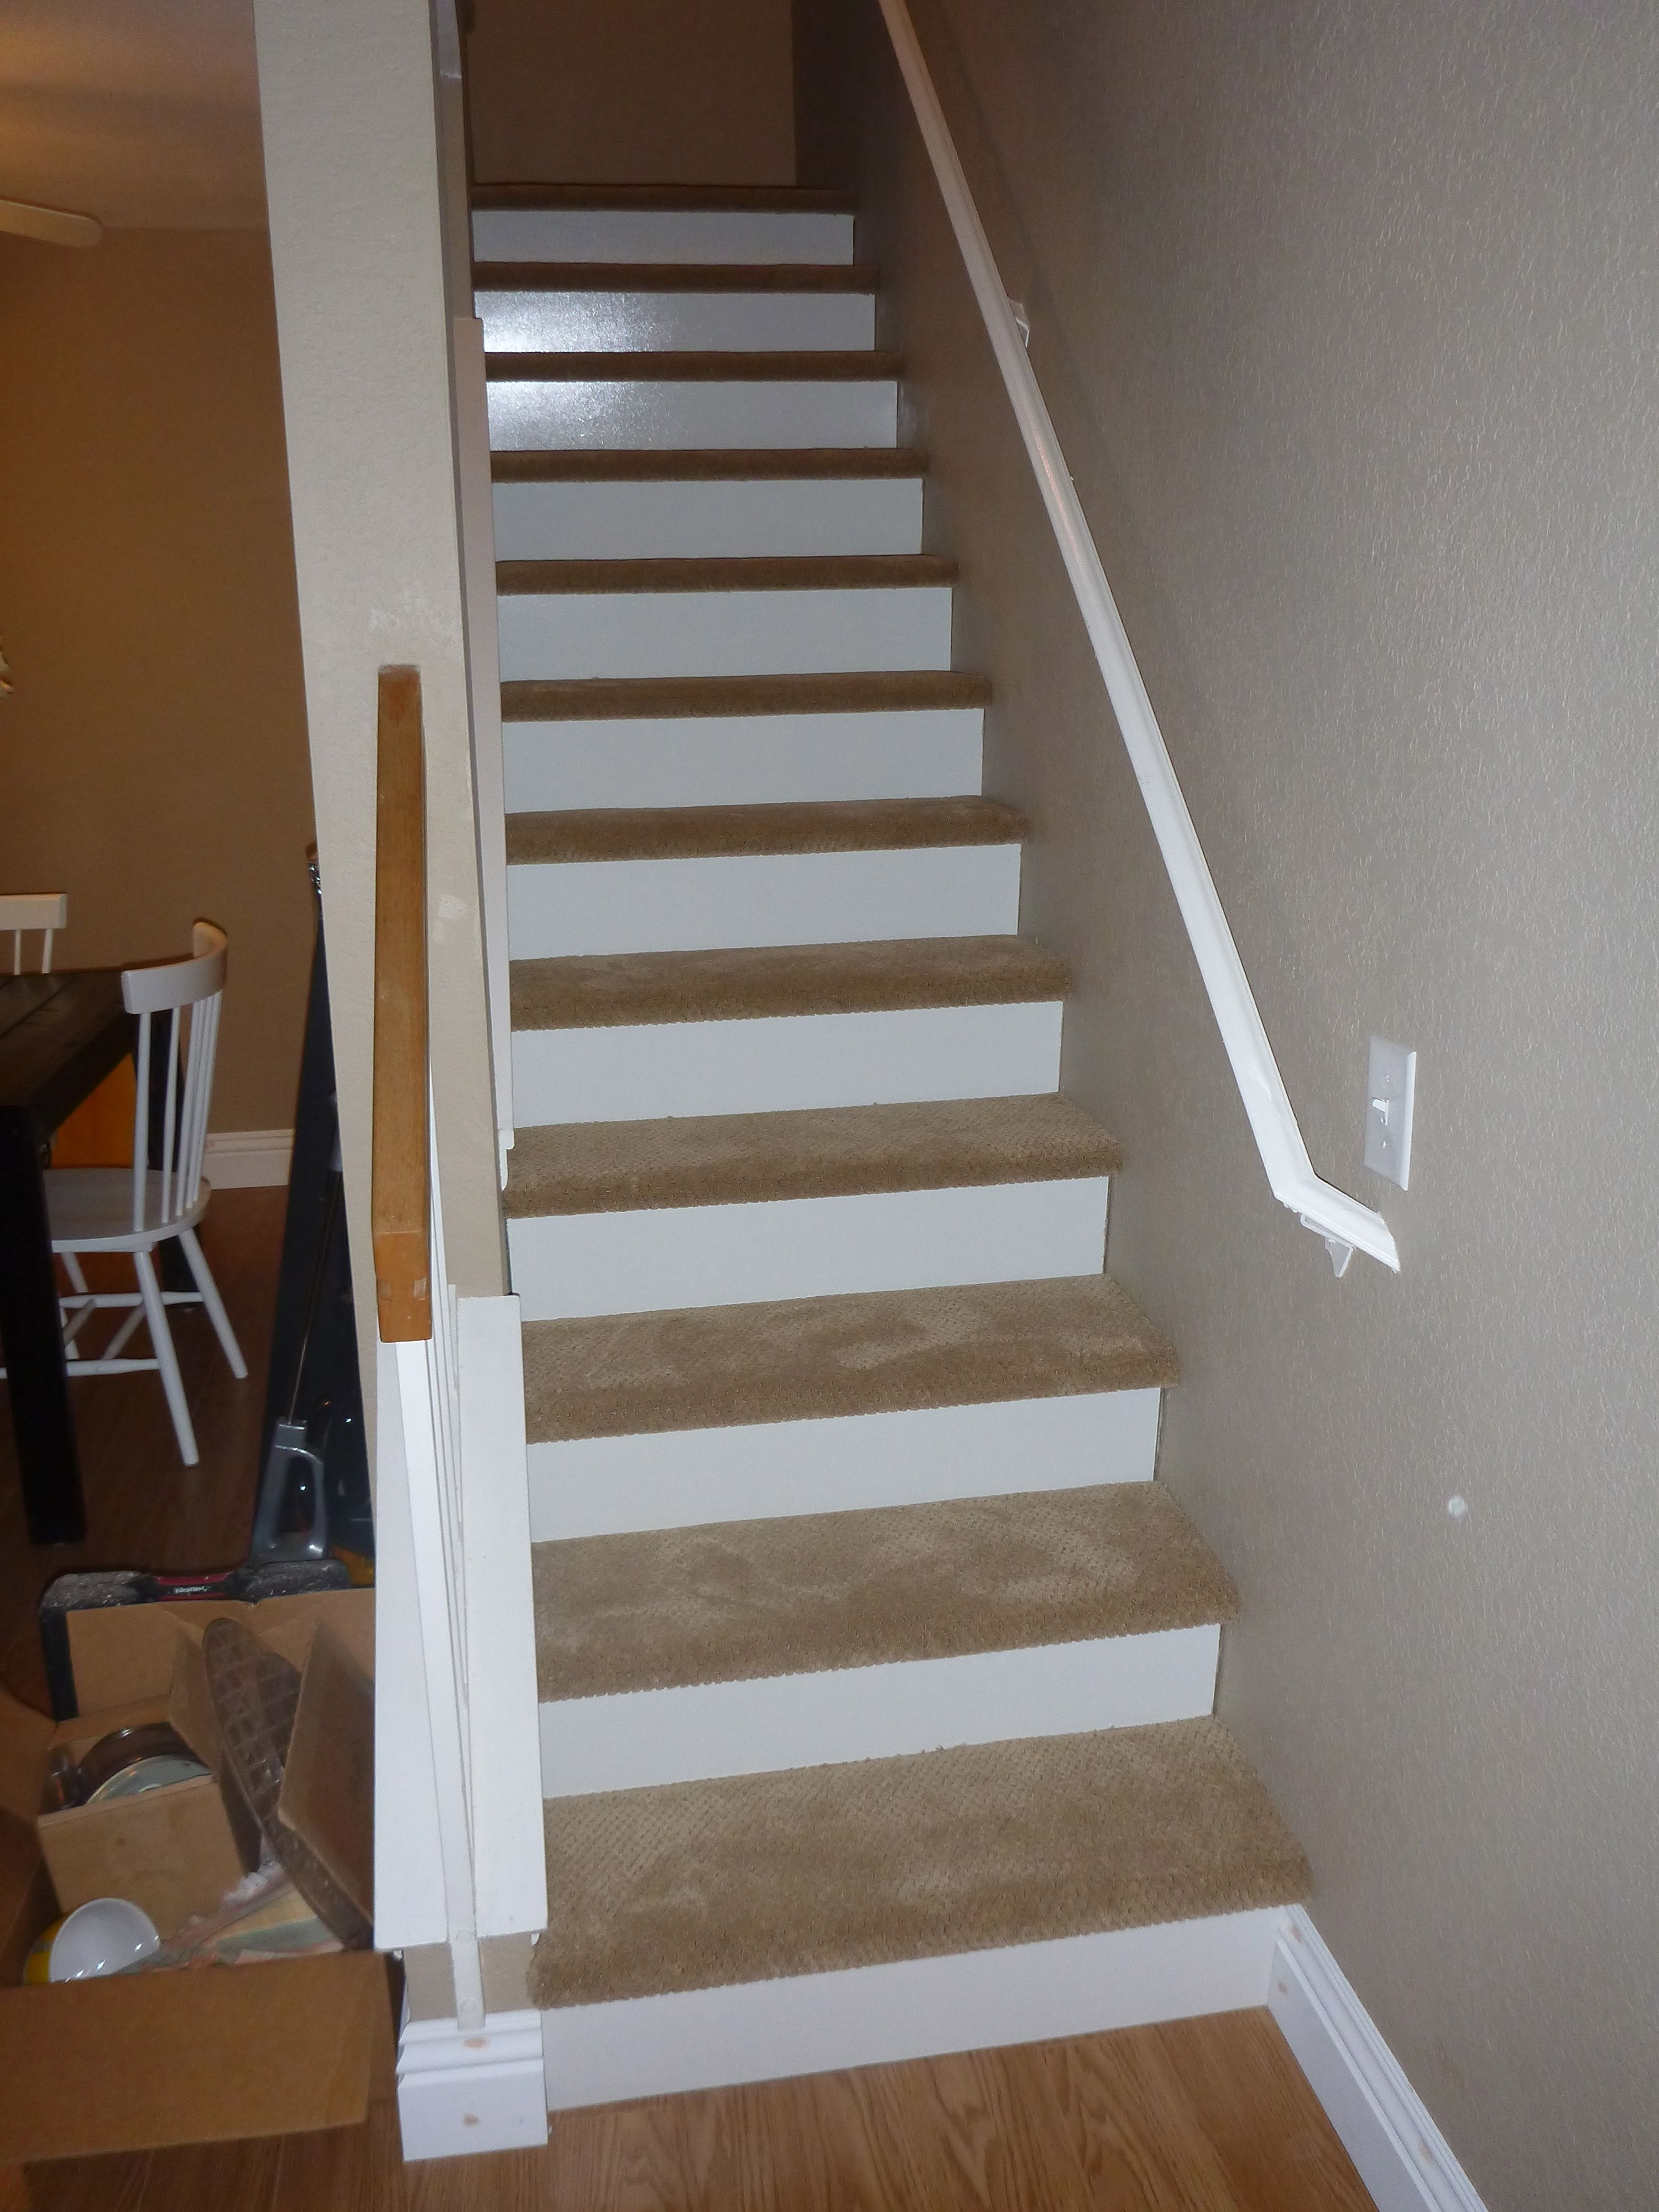 Our new stairs inch wood white board cut and put on the